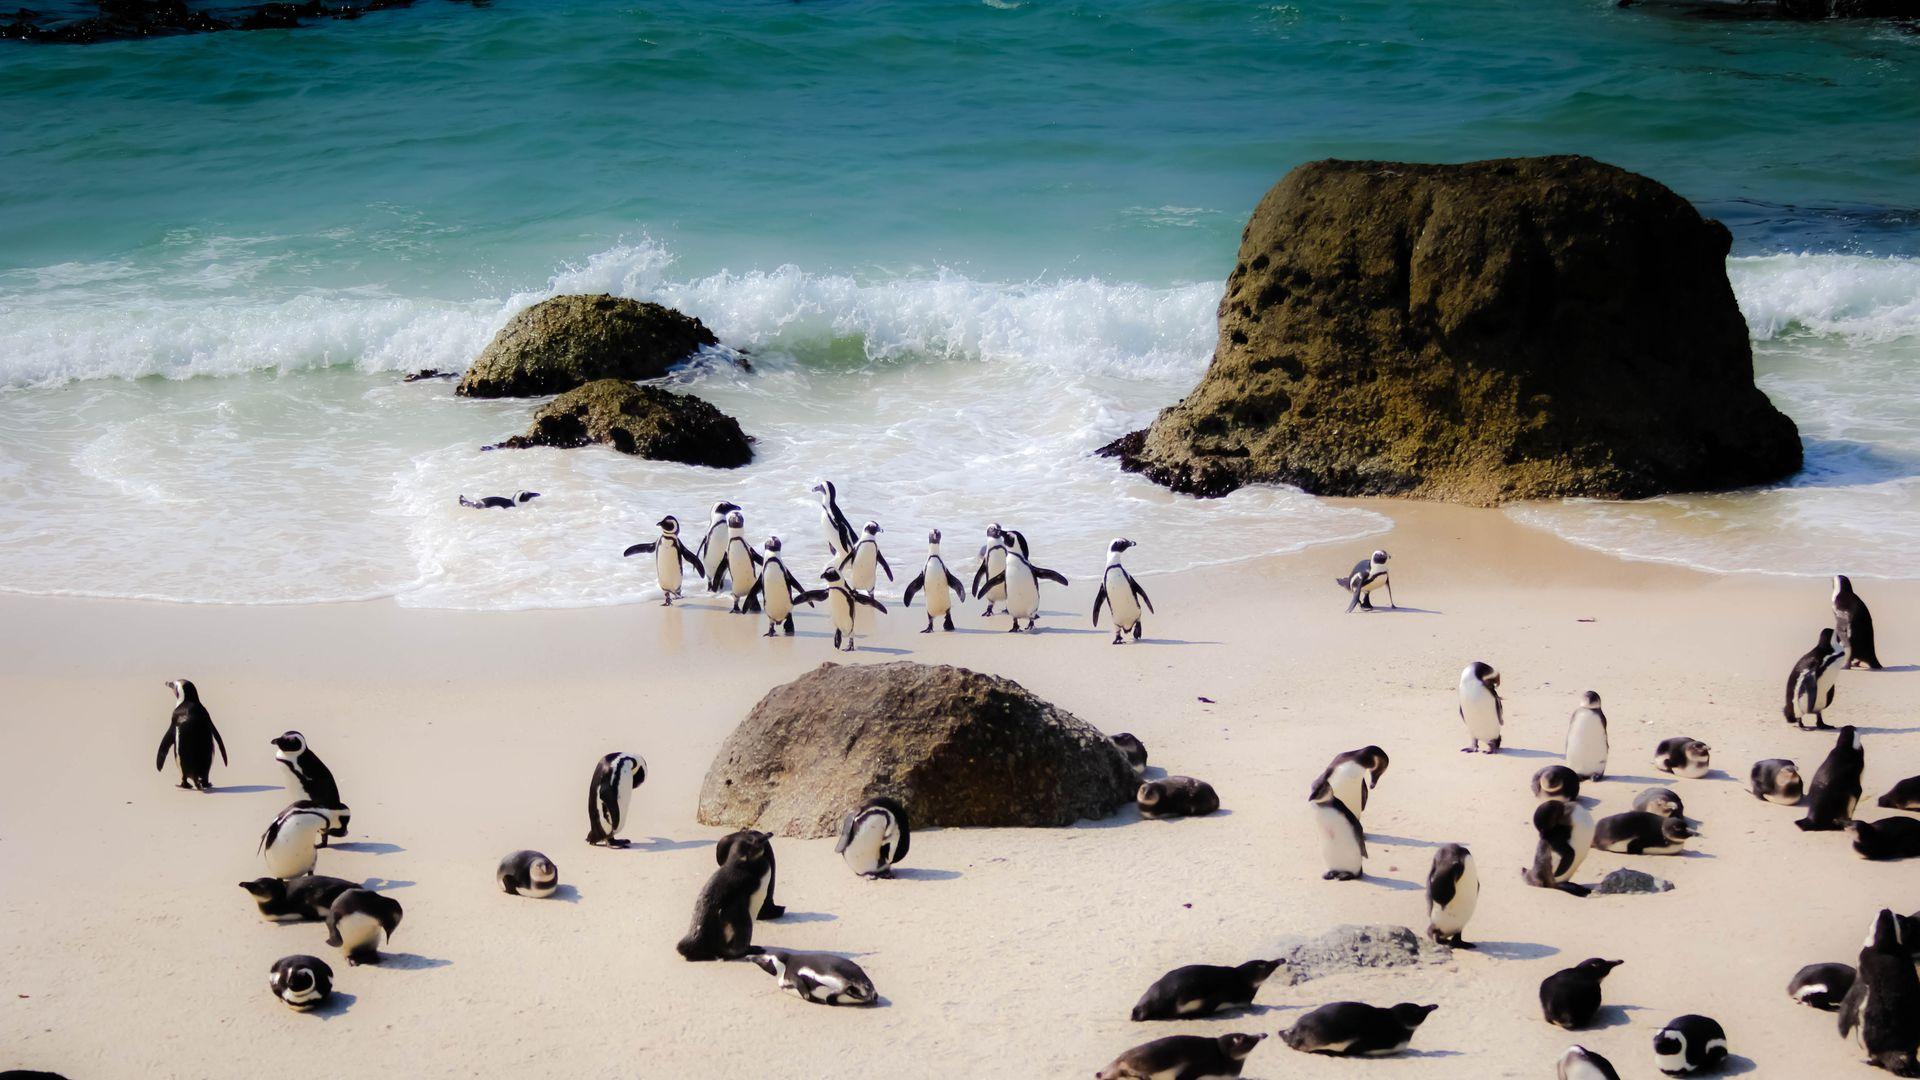 Penguins-at-Boulders-Beach-Cape Town-South-Africa.jpg